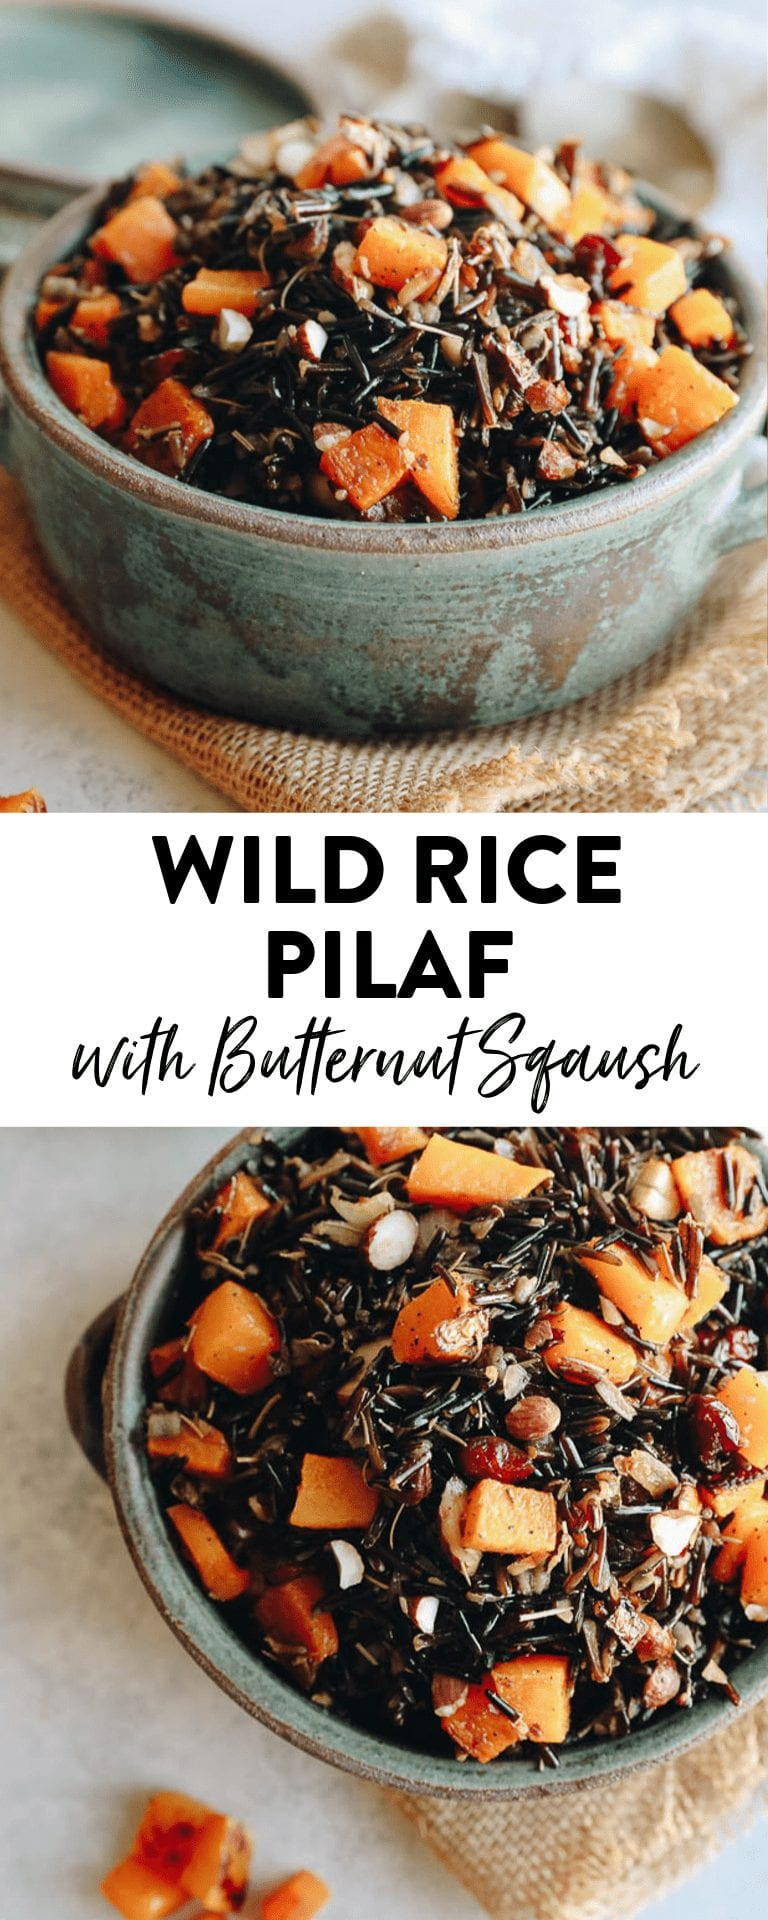 wild rice pilaf in a bowl